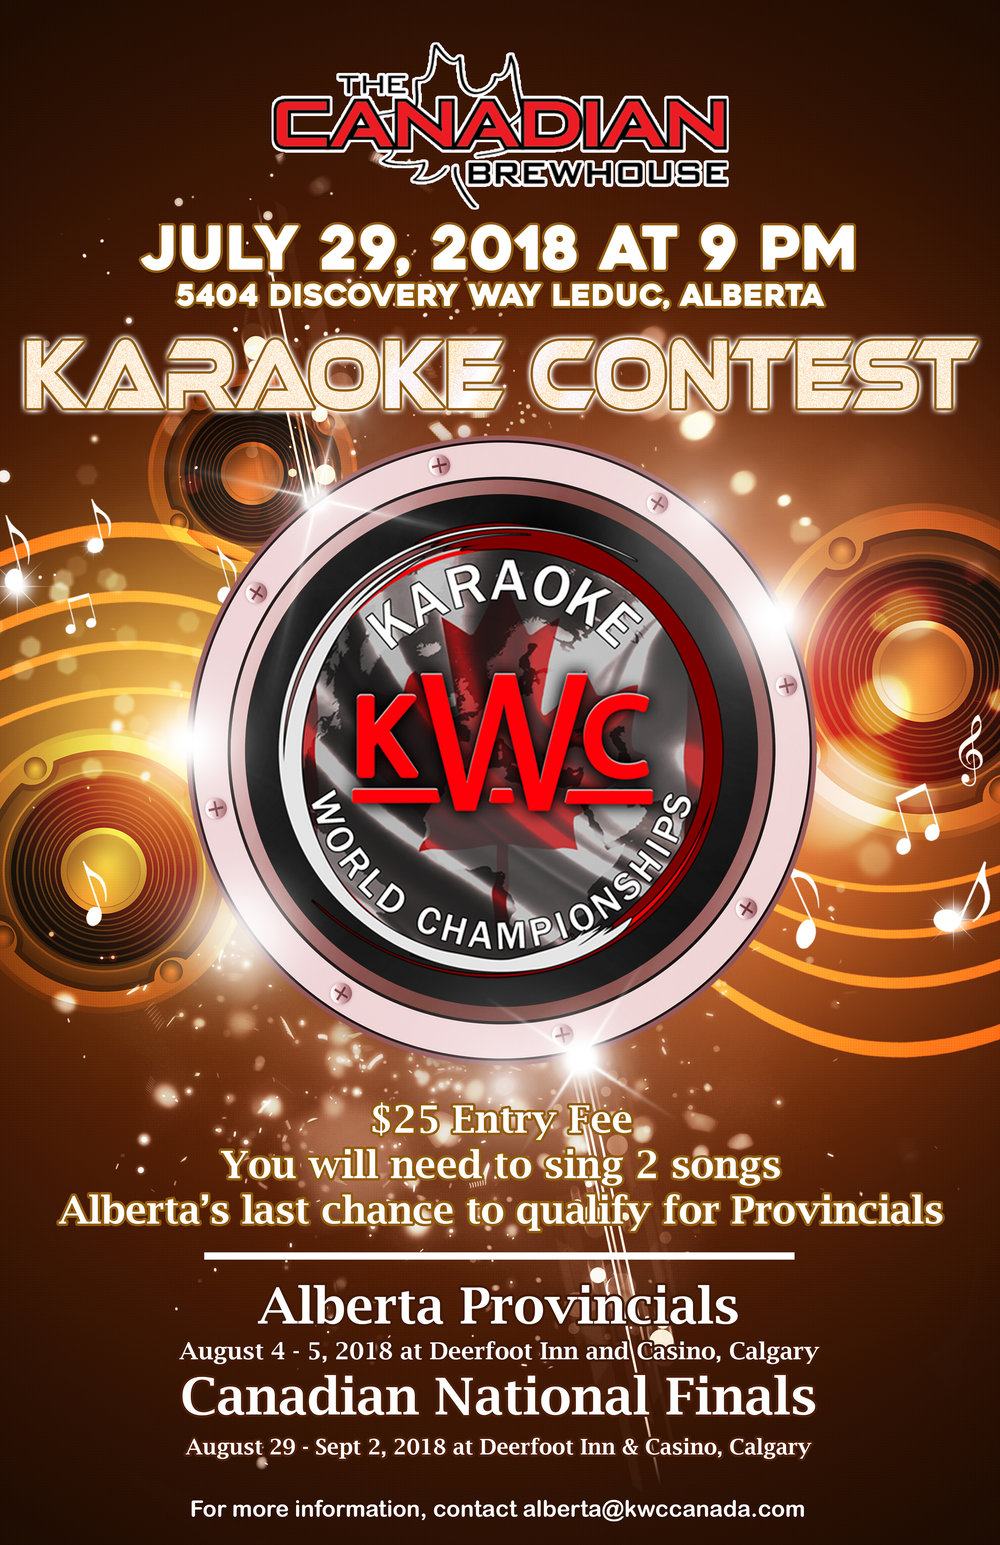 ONE NIGHT ONLY!! Canadian Brewhouse, Leduc - 5404 Discovery Way, Leduc, AlbertaHosted by Mr. EntertainmentRegister between 9:00 & 9:45 pmContest starts at 10:00 pmTop 2 men & 2 women are invited to attend the Provincial Finals on August 4th & 5th, plus each will receive a $25.00 Gift Certificate from Canadian Brewhouse